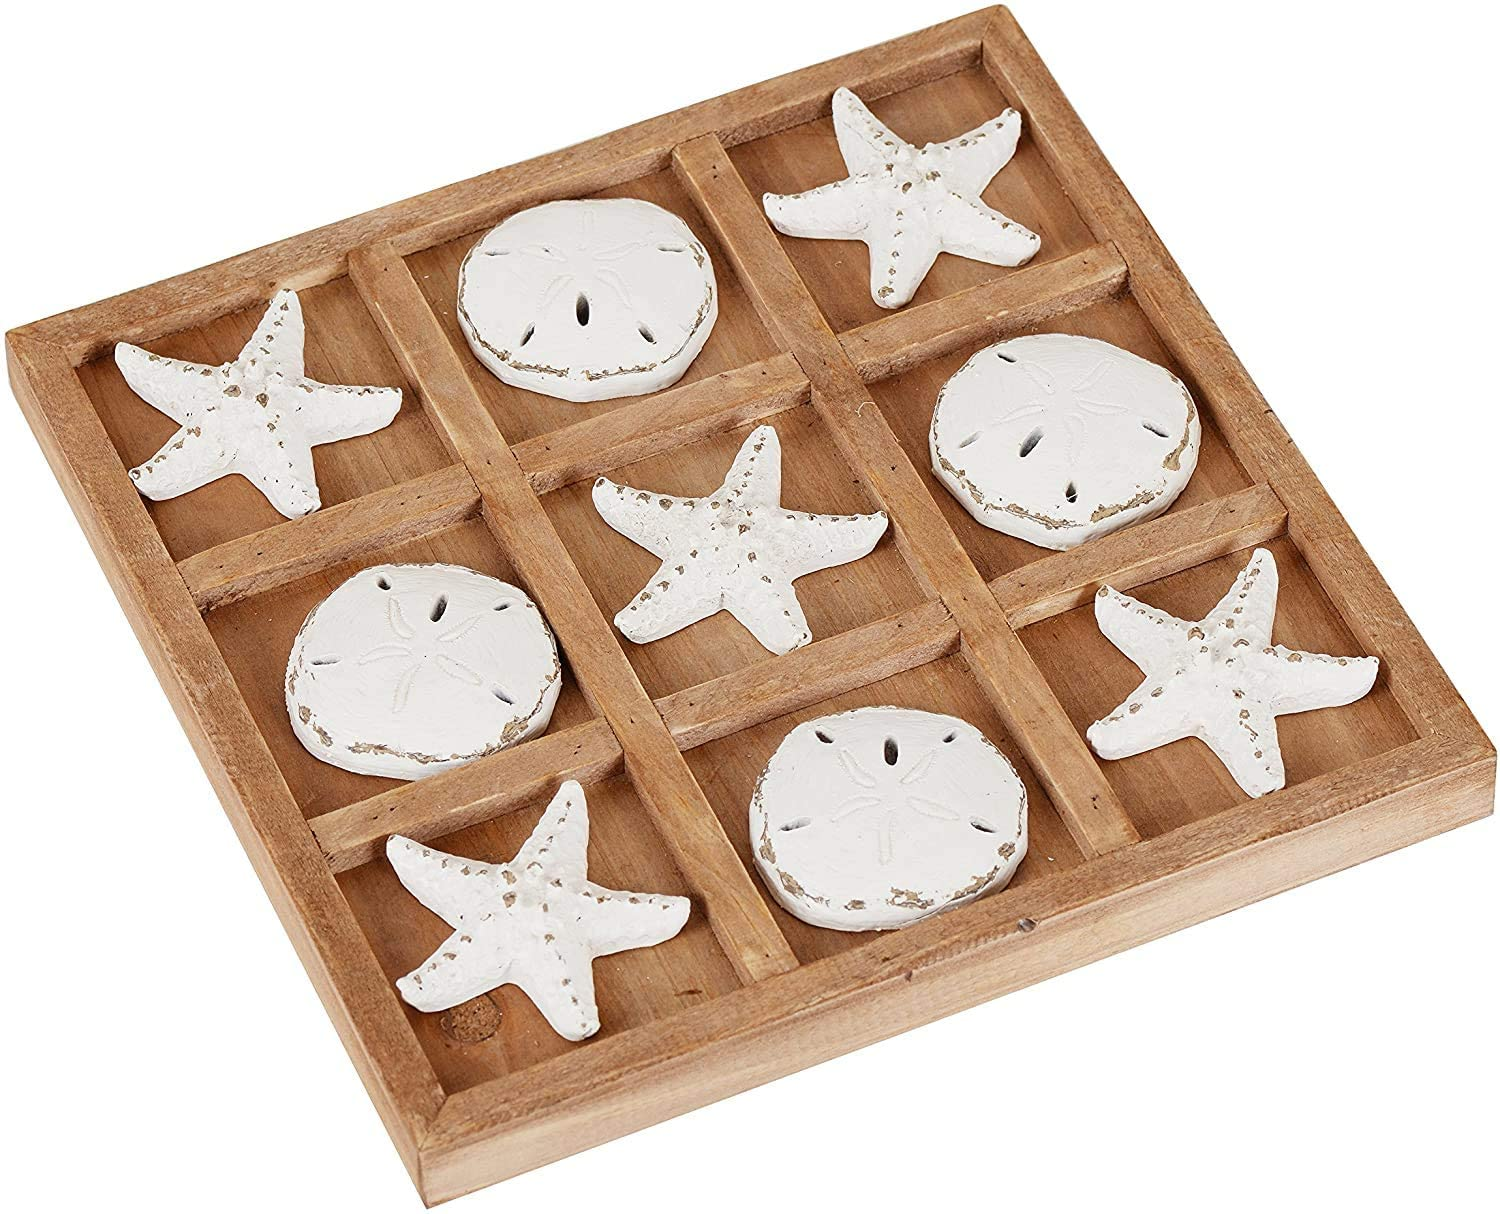 Wood Board Travel Game Tic Tac Toe